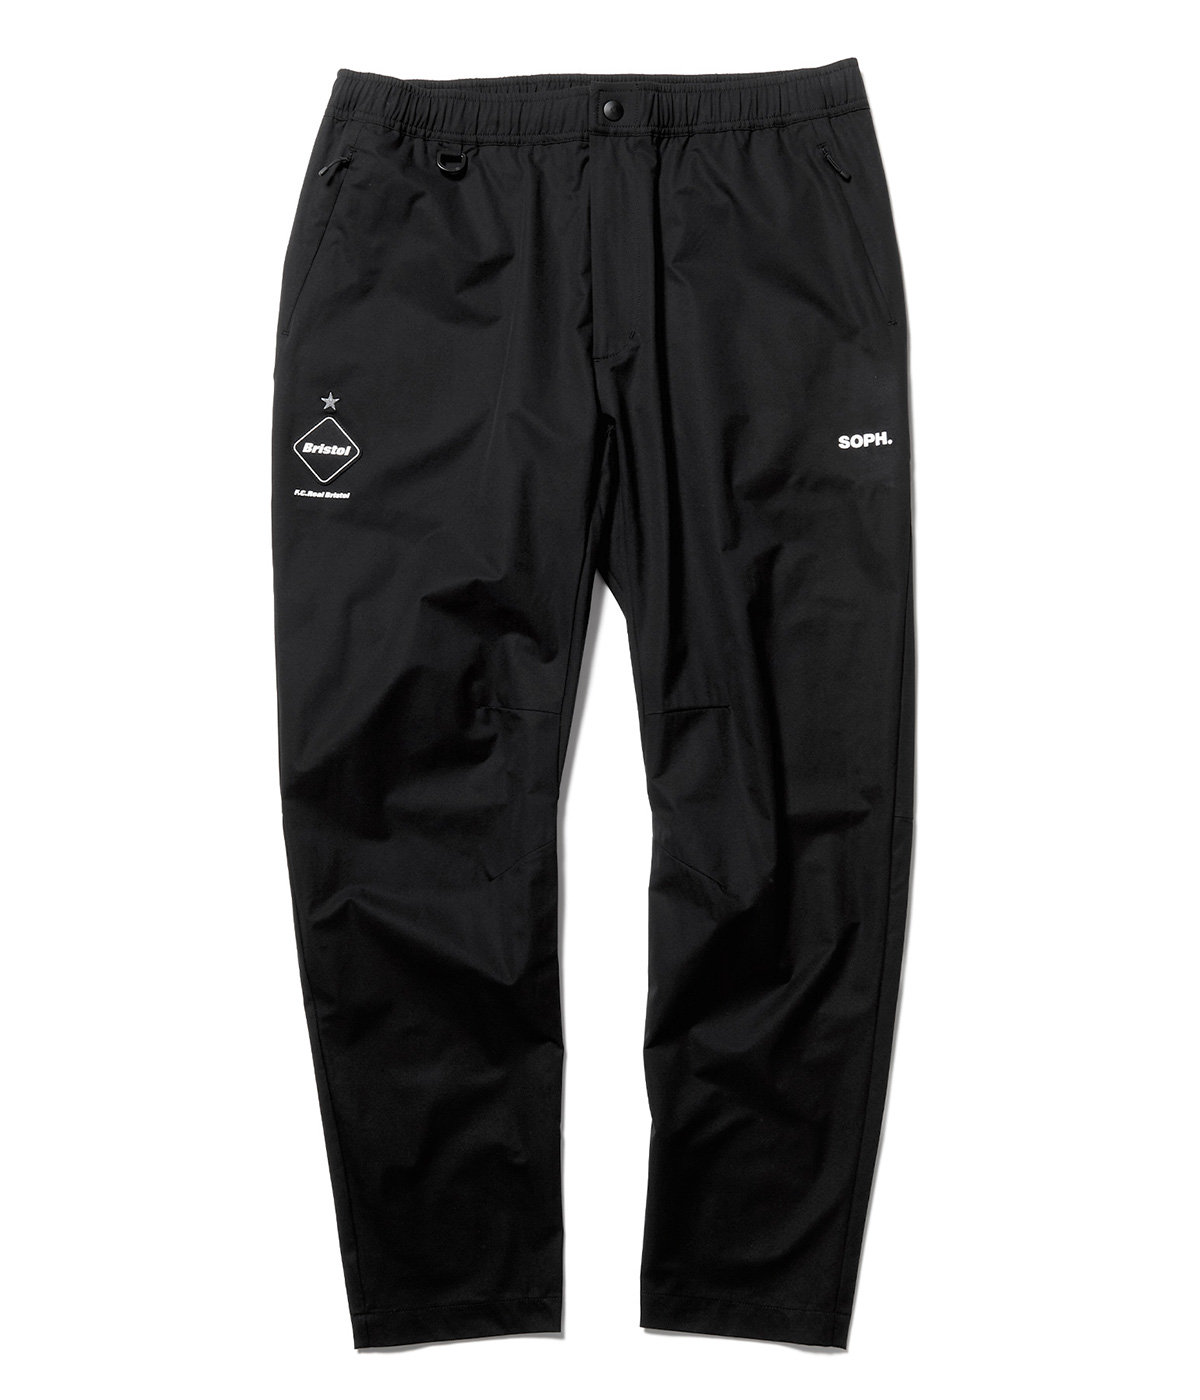 4WAY STRETCH EASY TAPERED PANTS